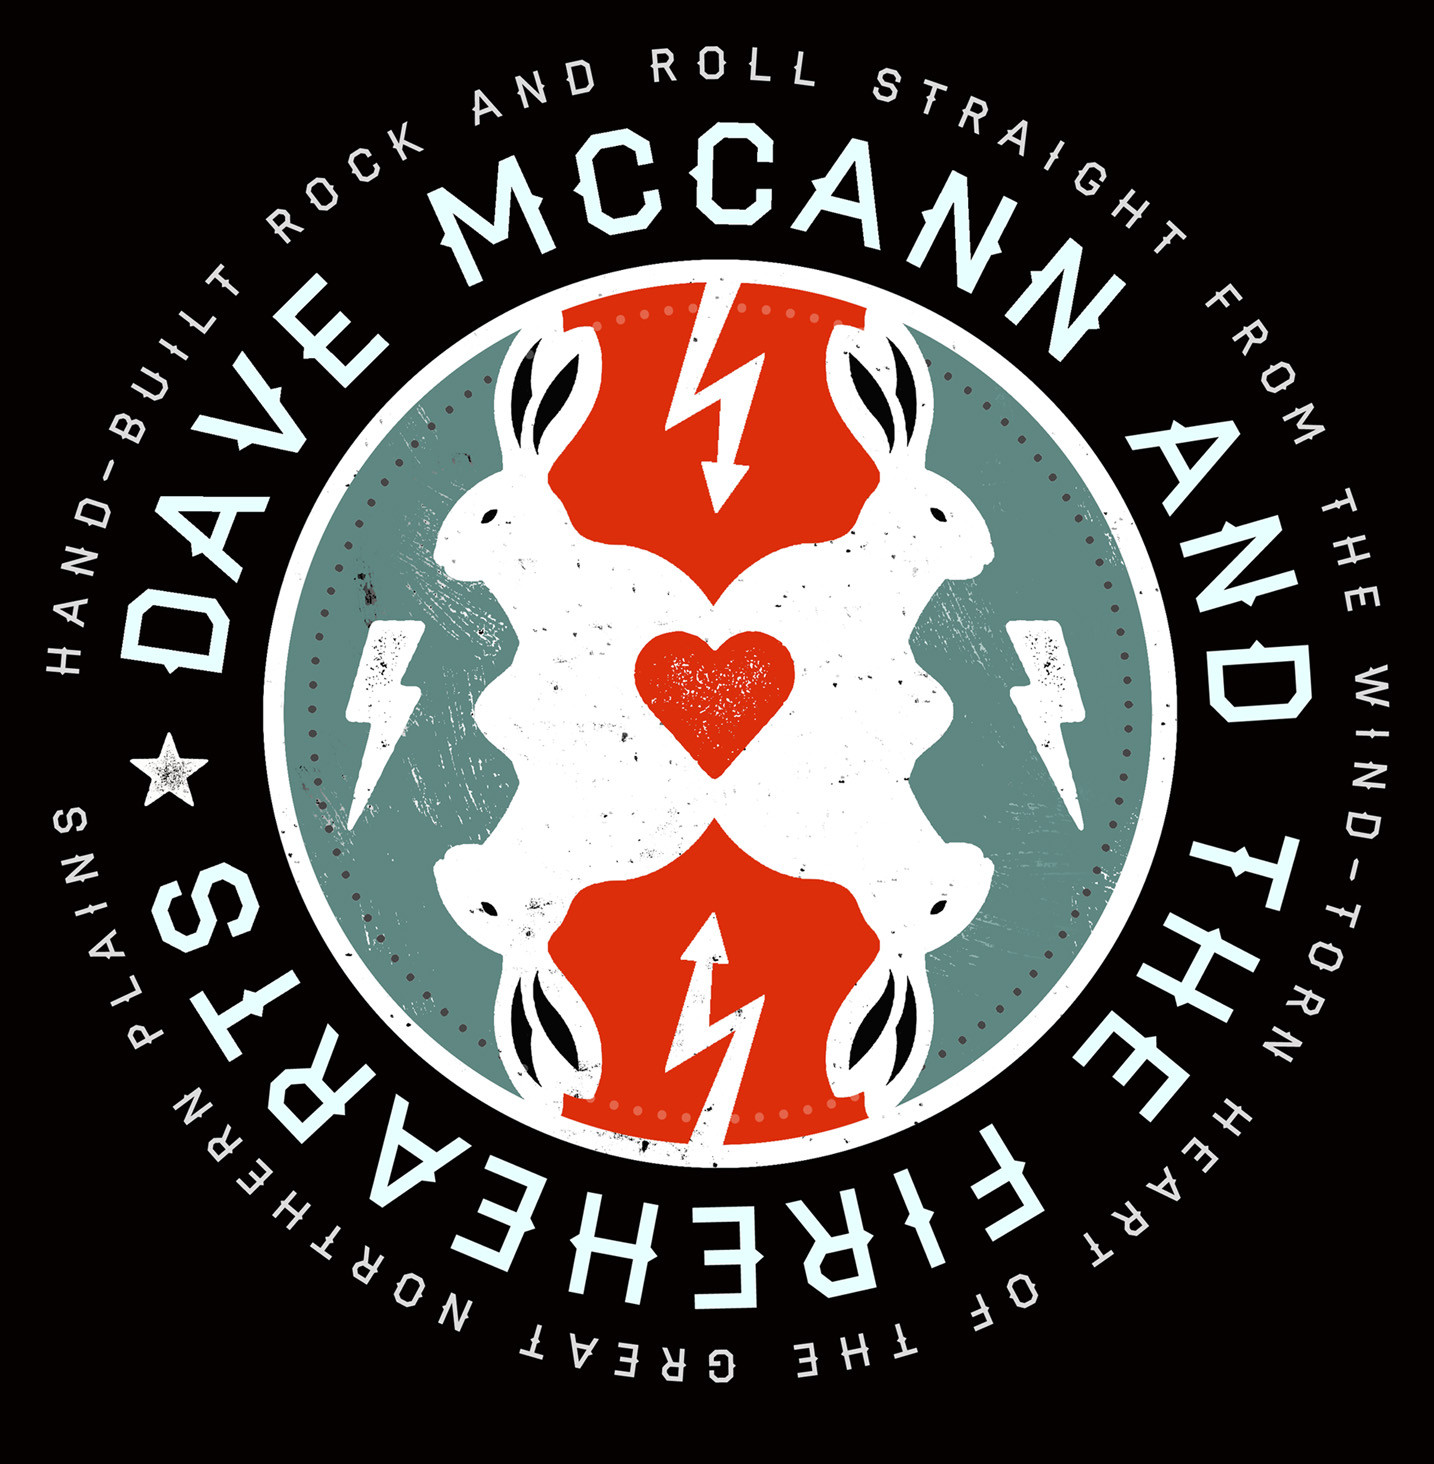 Dave McCand and the Firehearts  T Shirt logo